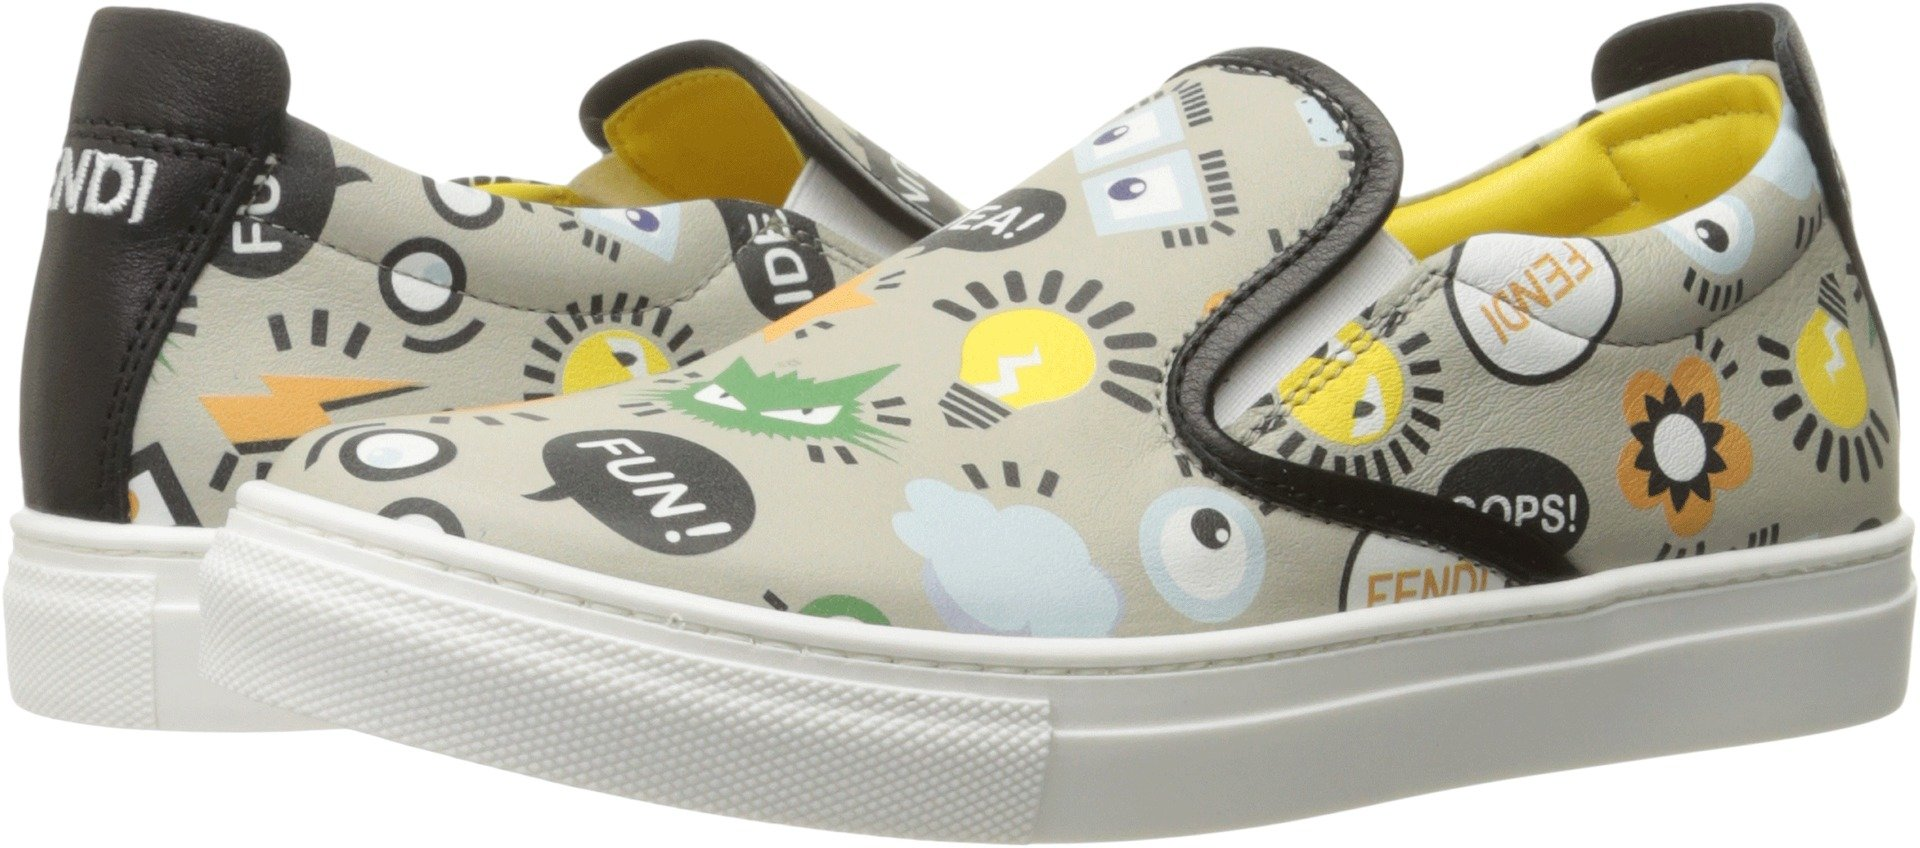 Fendi Kids Boy's All Over Print Slip-On Sneakers (Big Kid) Grey Loafer by Fendi Kids